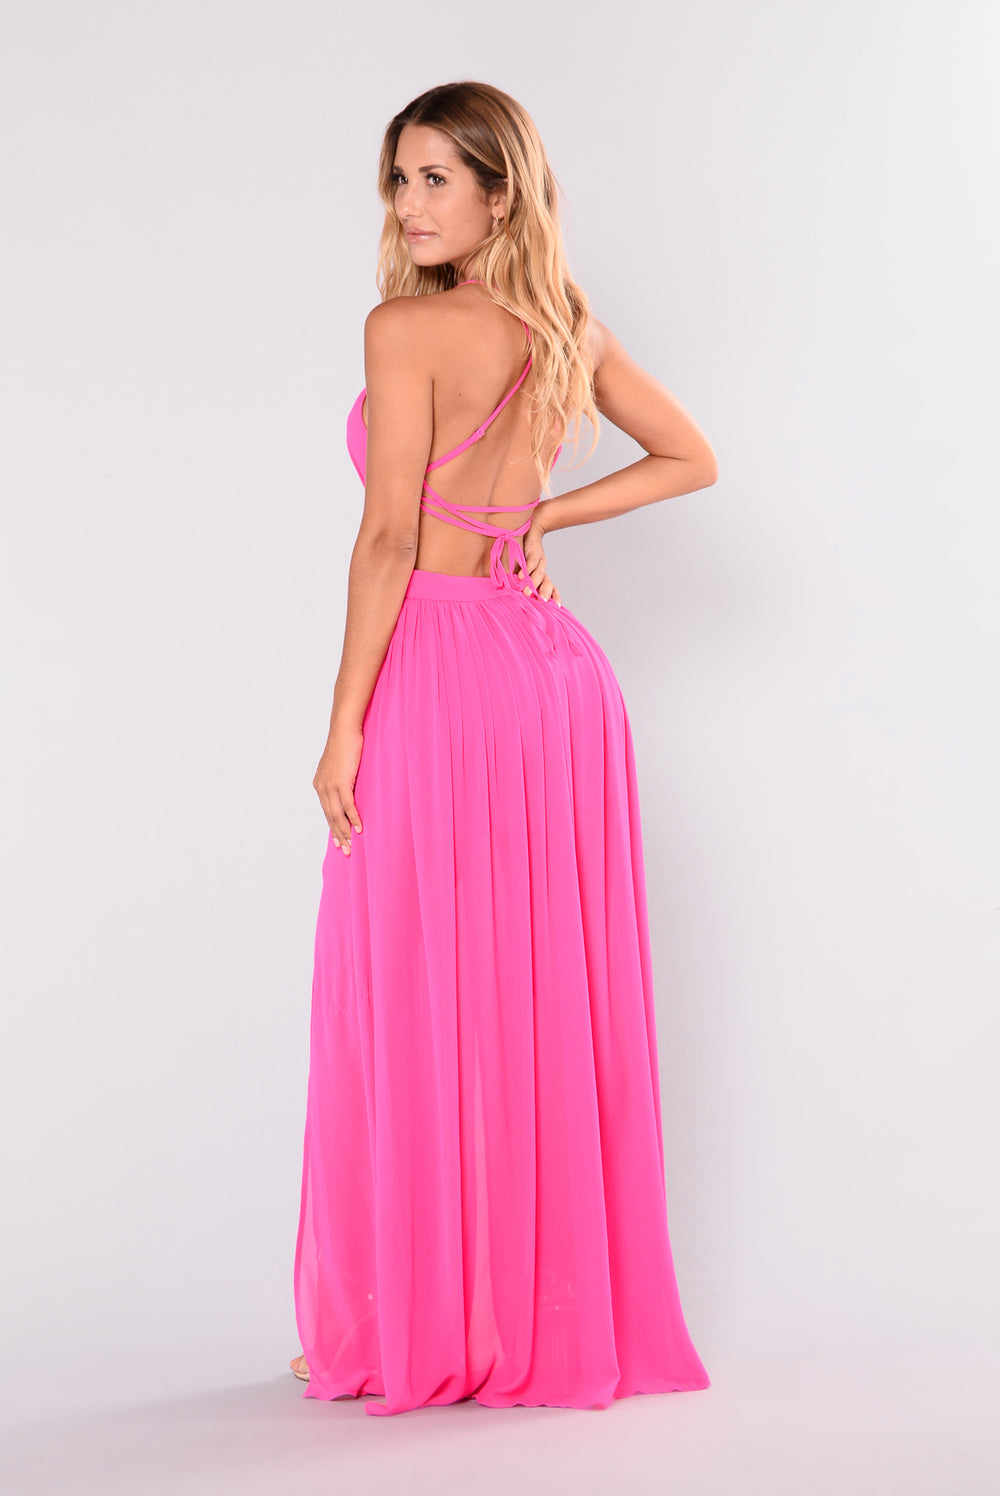 Maxi dresses with floral prints and patterns are a great summer staple. We also have a great selection of open back maxi dresses and lace maxi dresses for that boho hippie vibe. For prom or any formal event, consider an embellished or beaded maxi dress for that extra touch of sparkle--we've got so many cute ones in so many different color options!